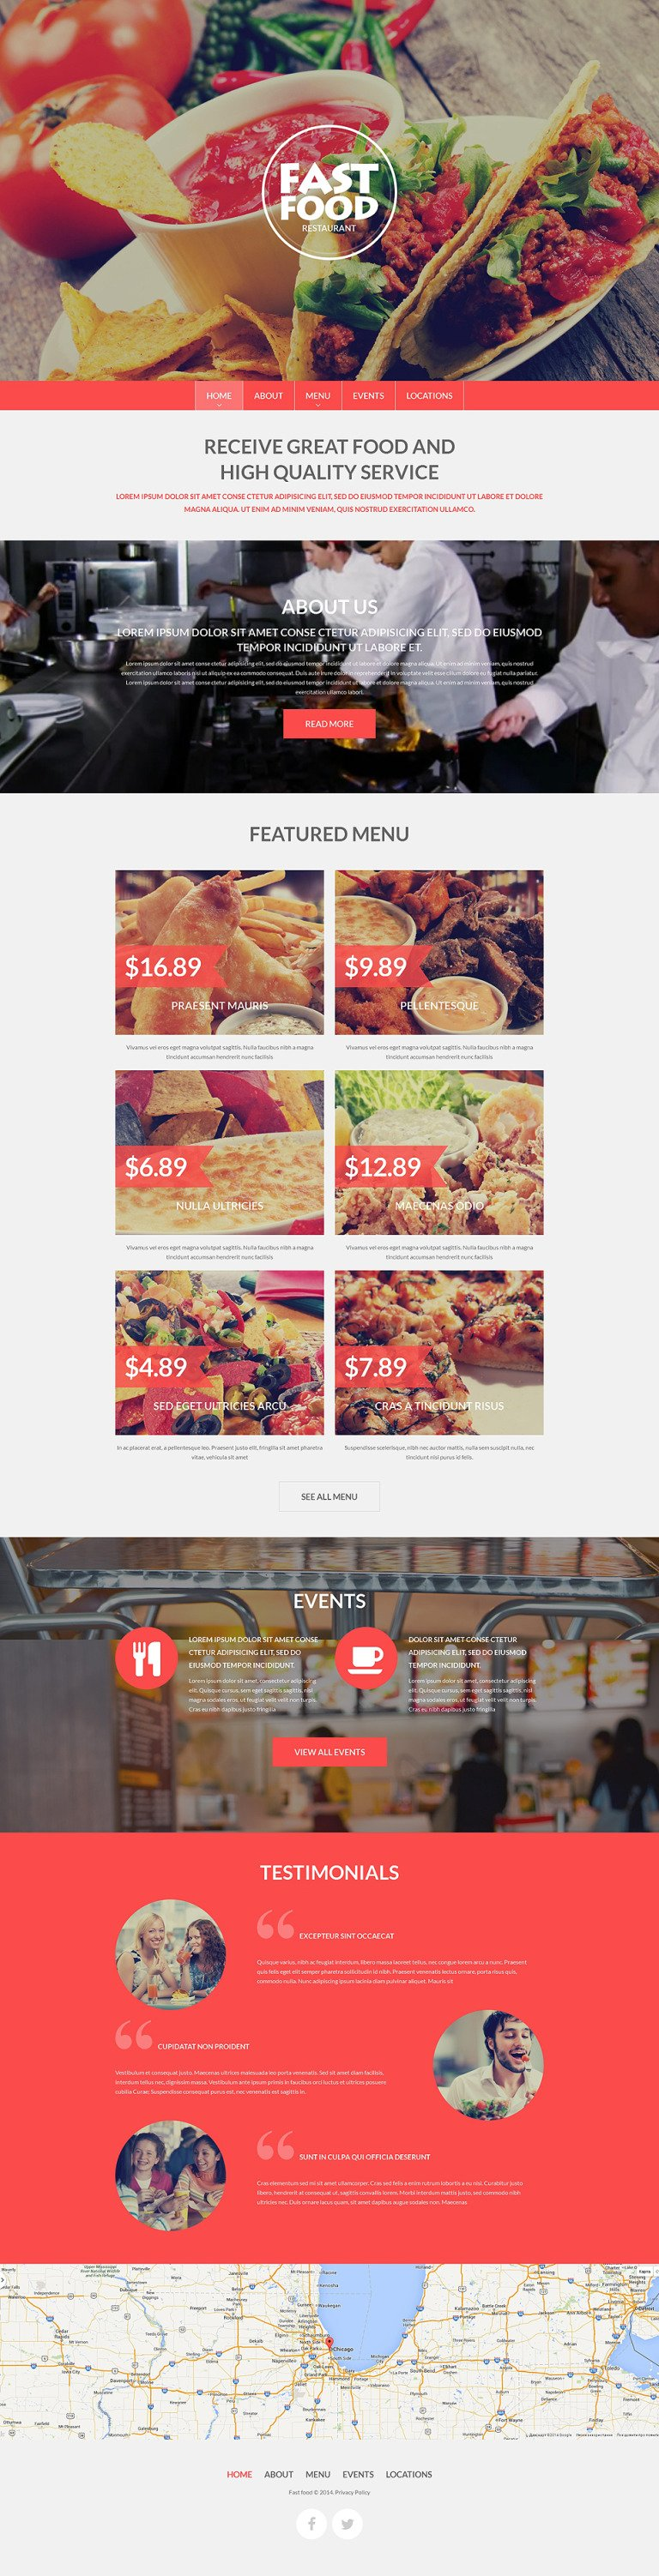 Fast Food Drupal Template New Screenshots BIG